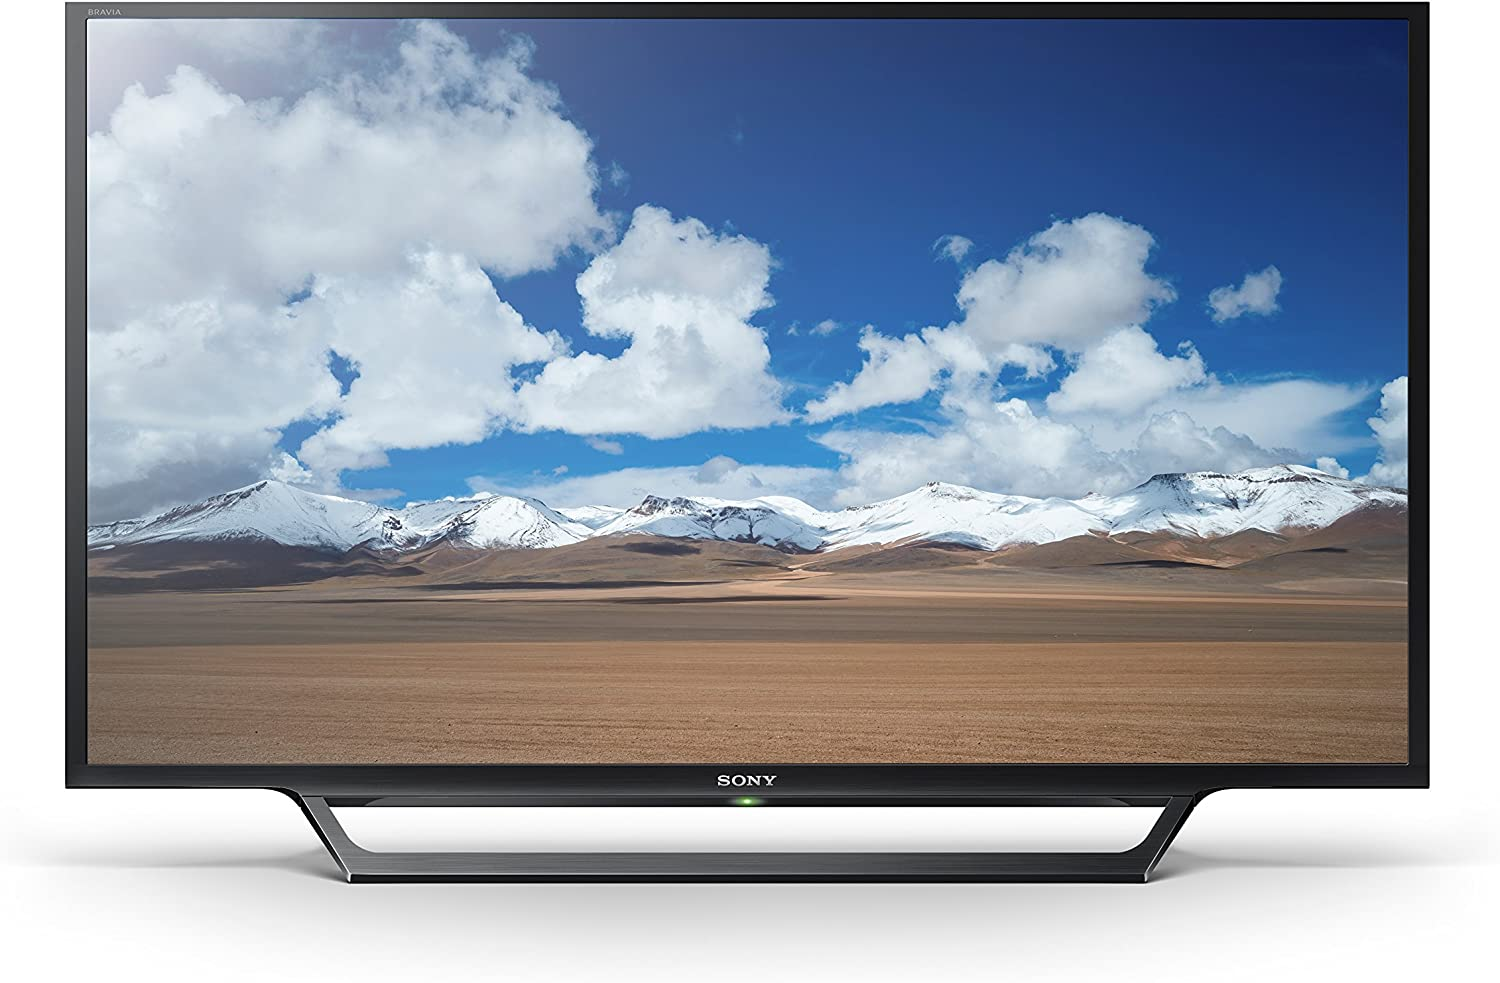 7 Best 32 Inch TVs for Gaming 2021 Reviews